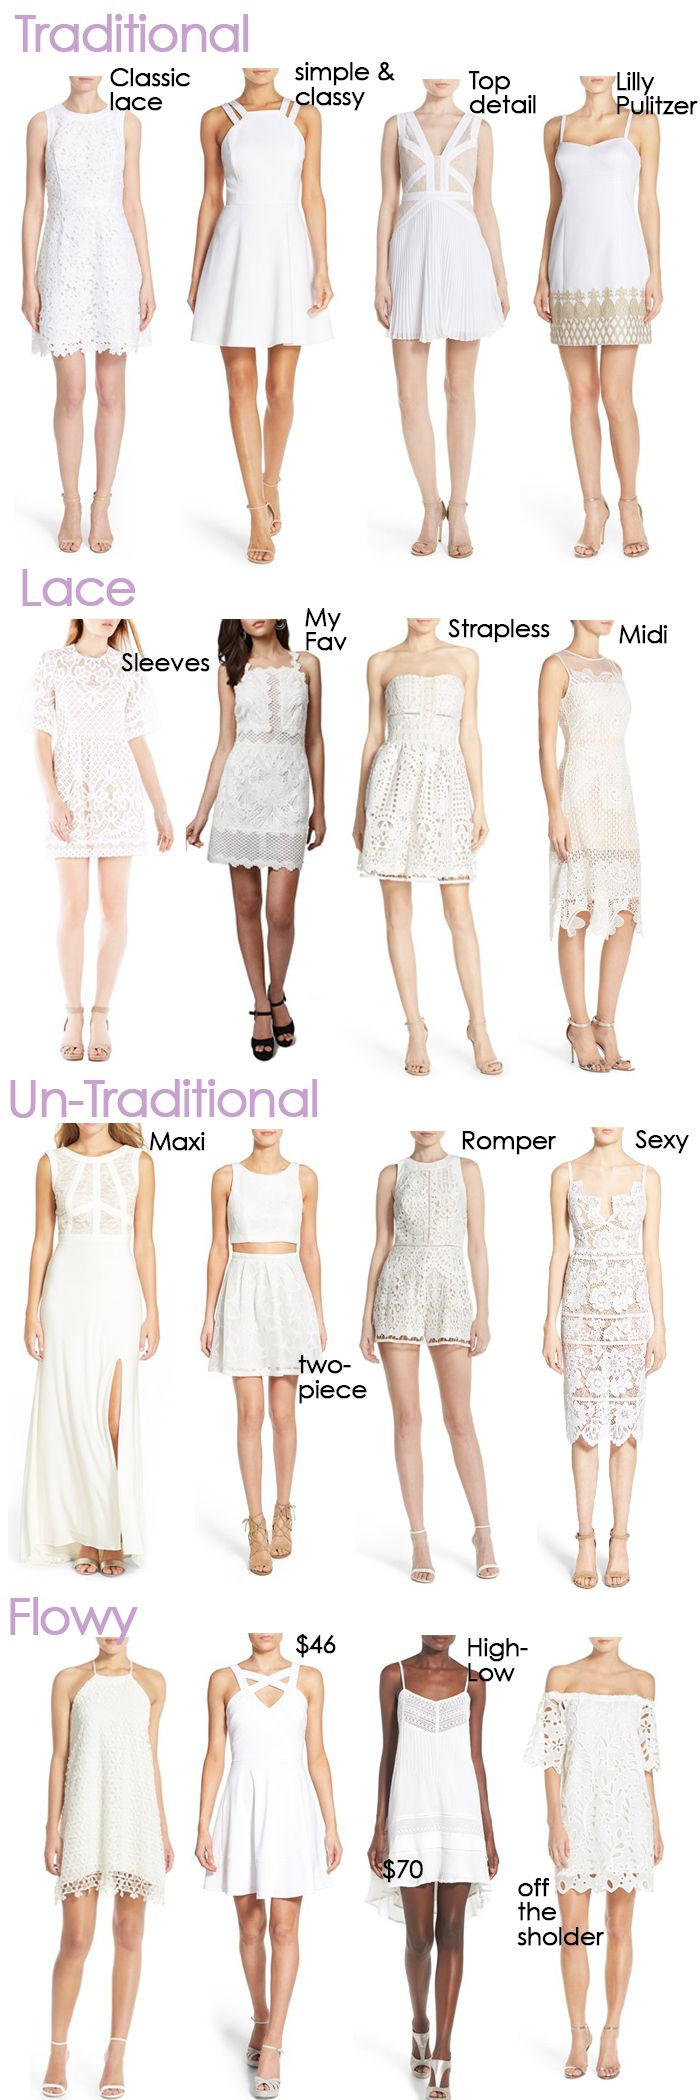 Perfect White Dresses For Graduation or Wedding Events